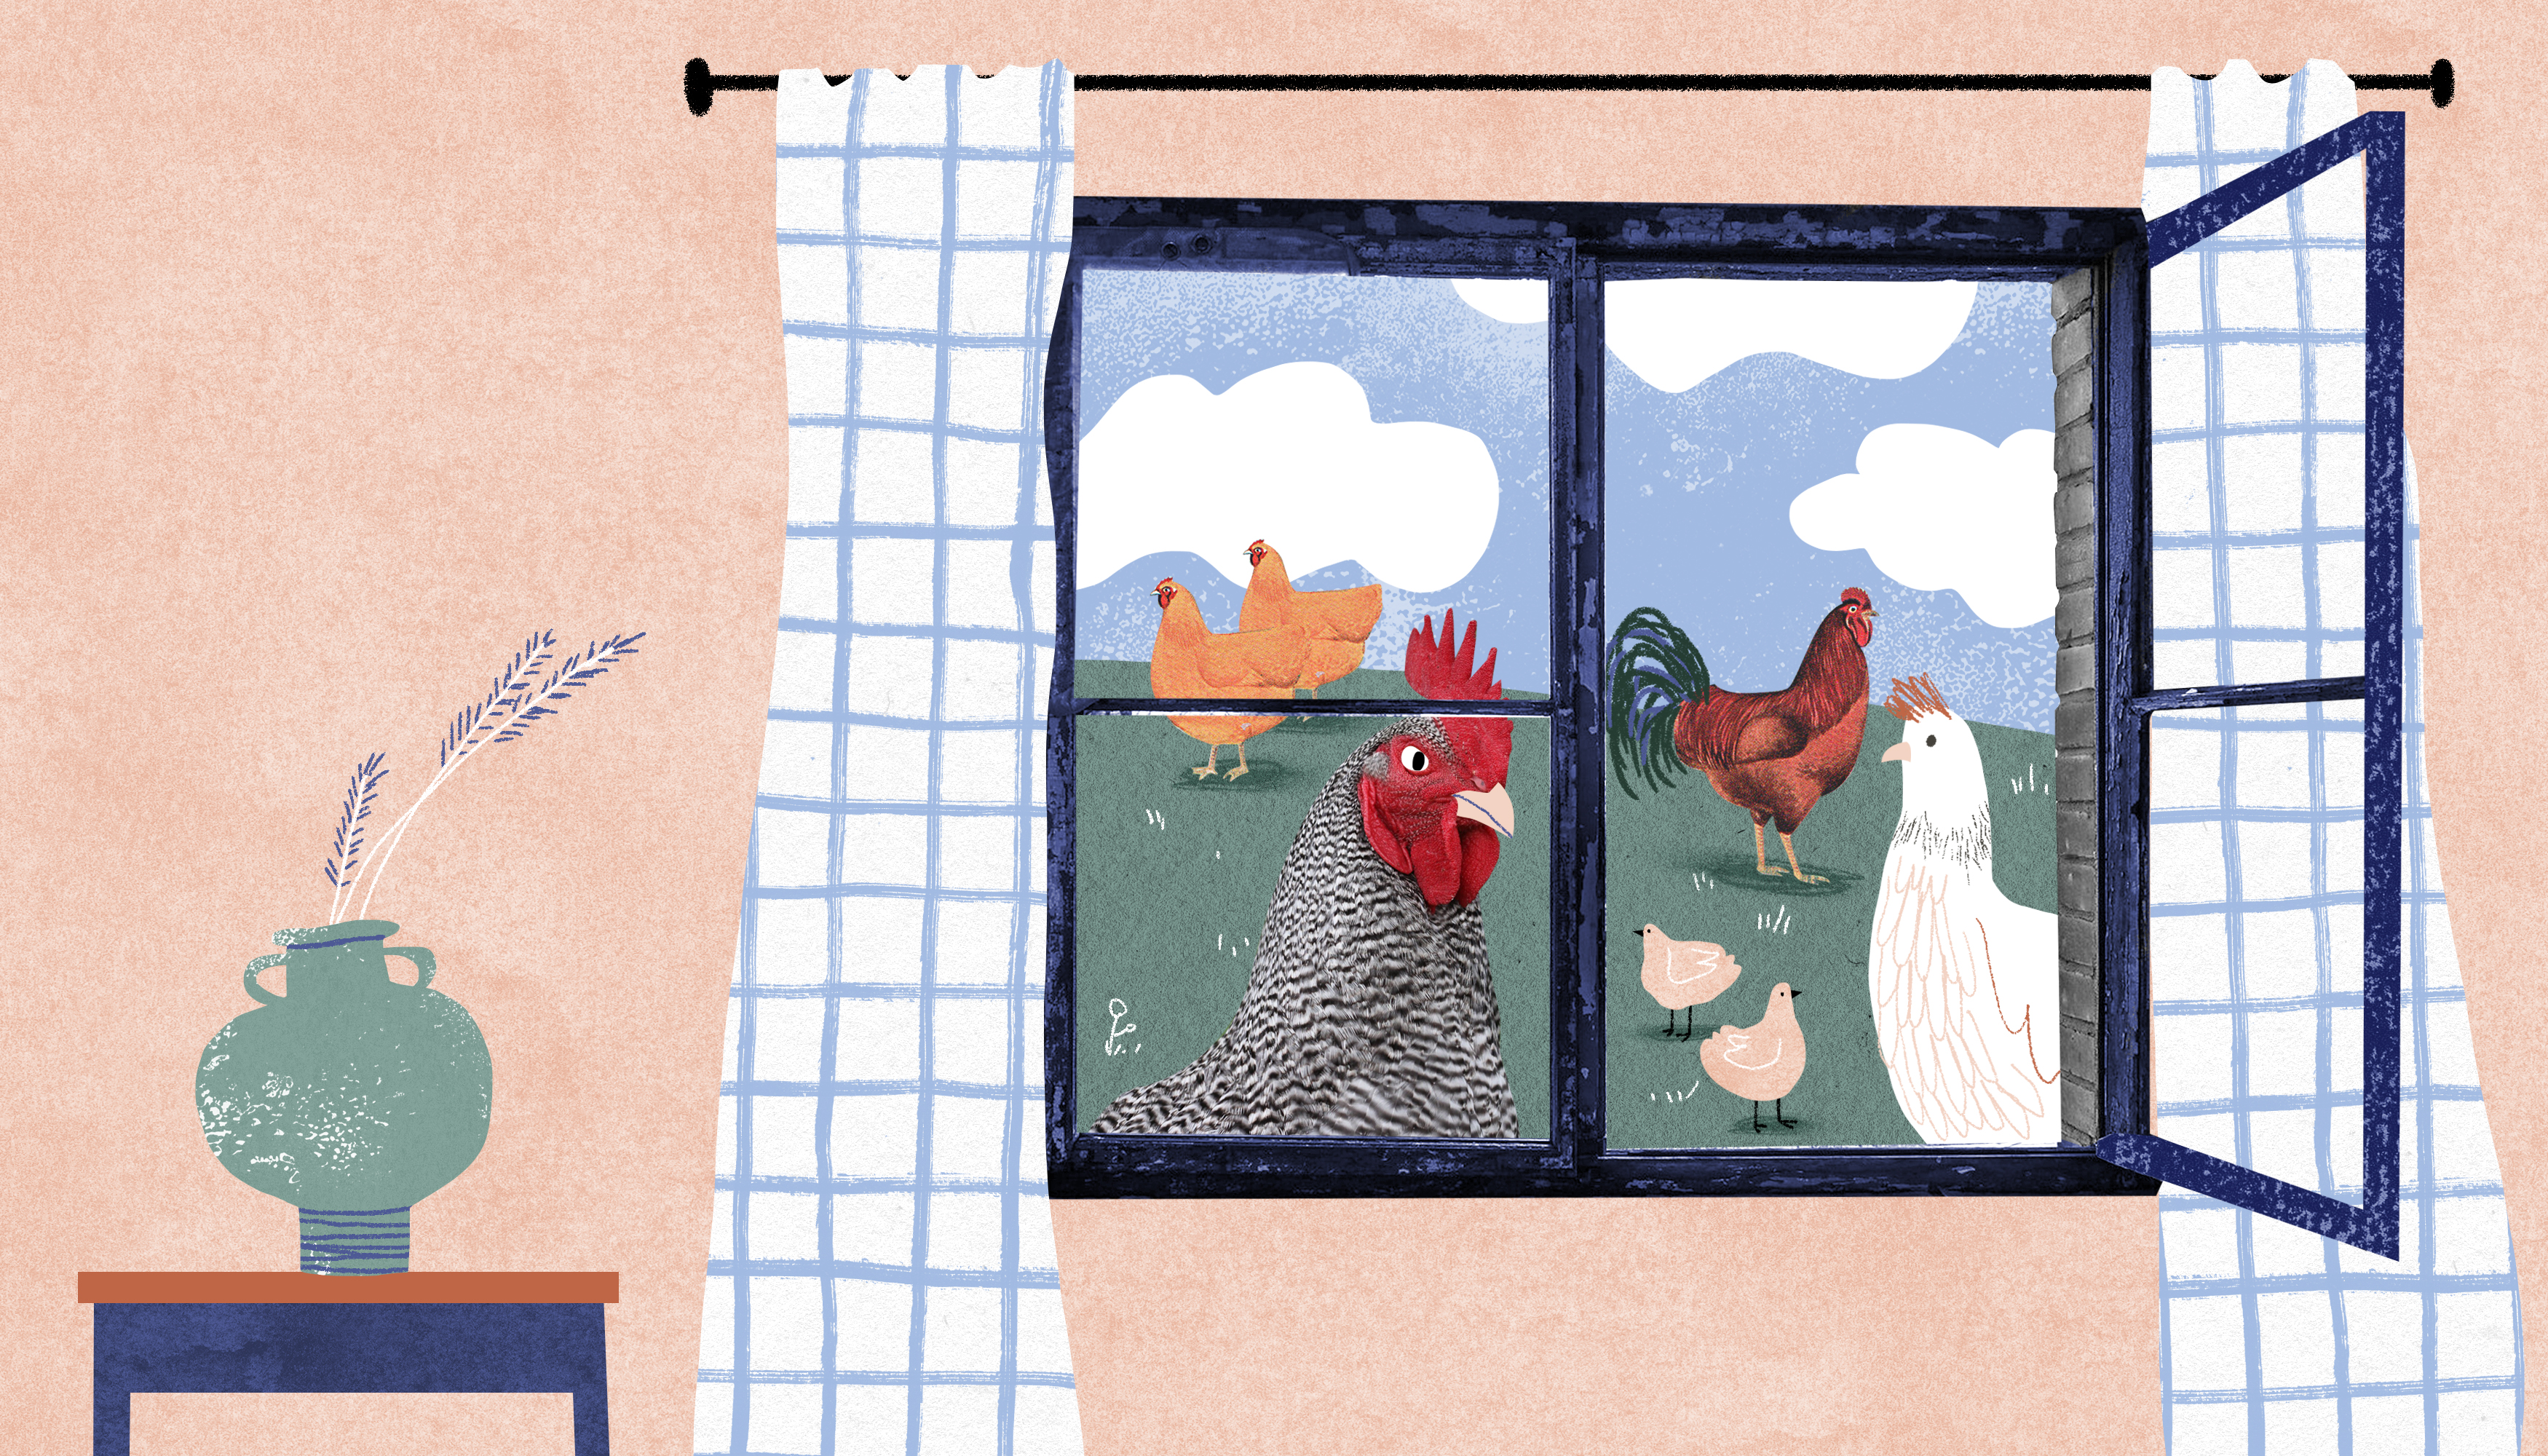 An open window on a peach wall with white and blue gridded curtains. The window looks onto a backyard scene where chickens and chicks roam happily. Illustration.